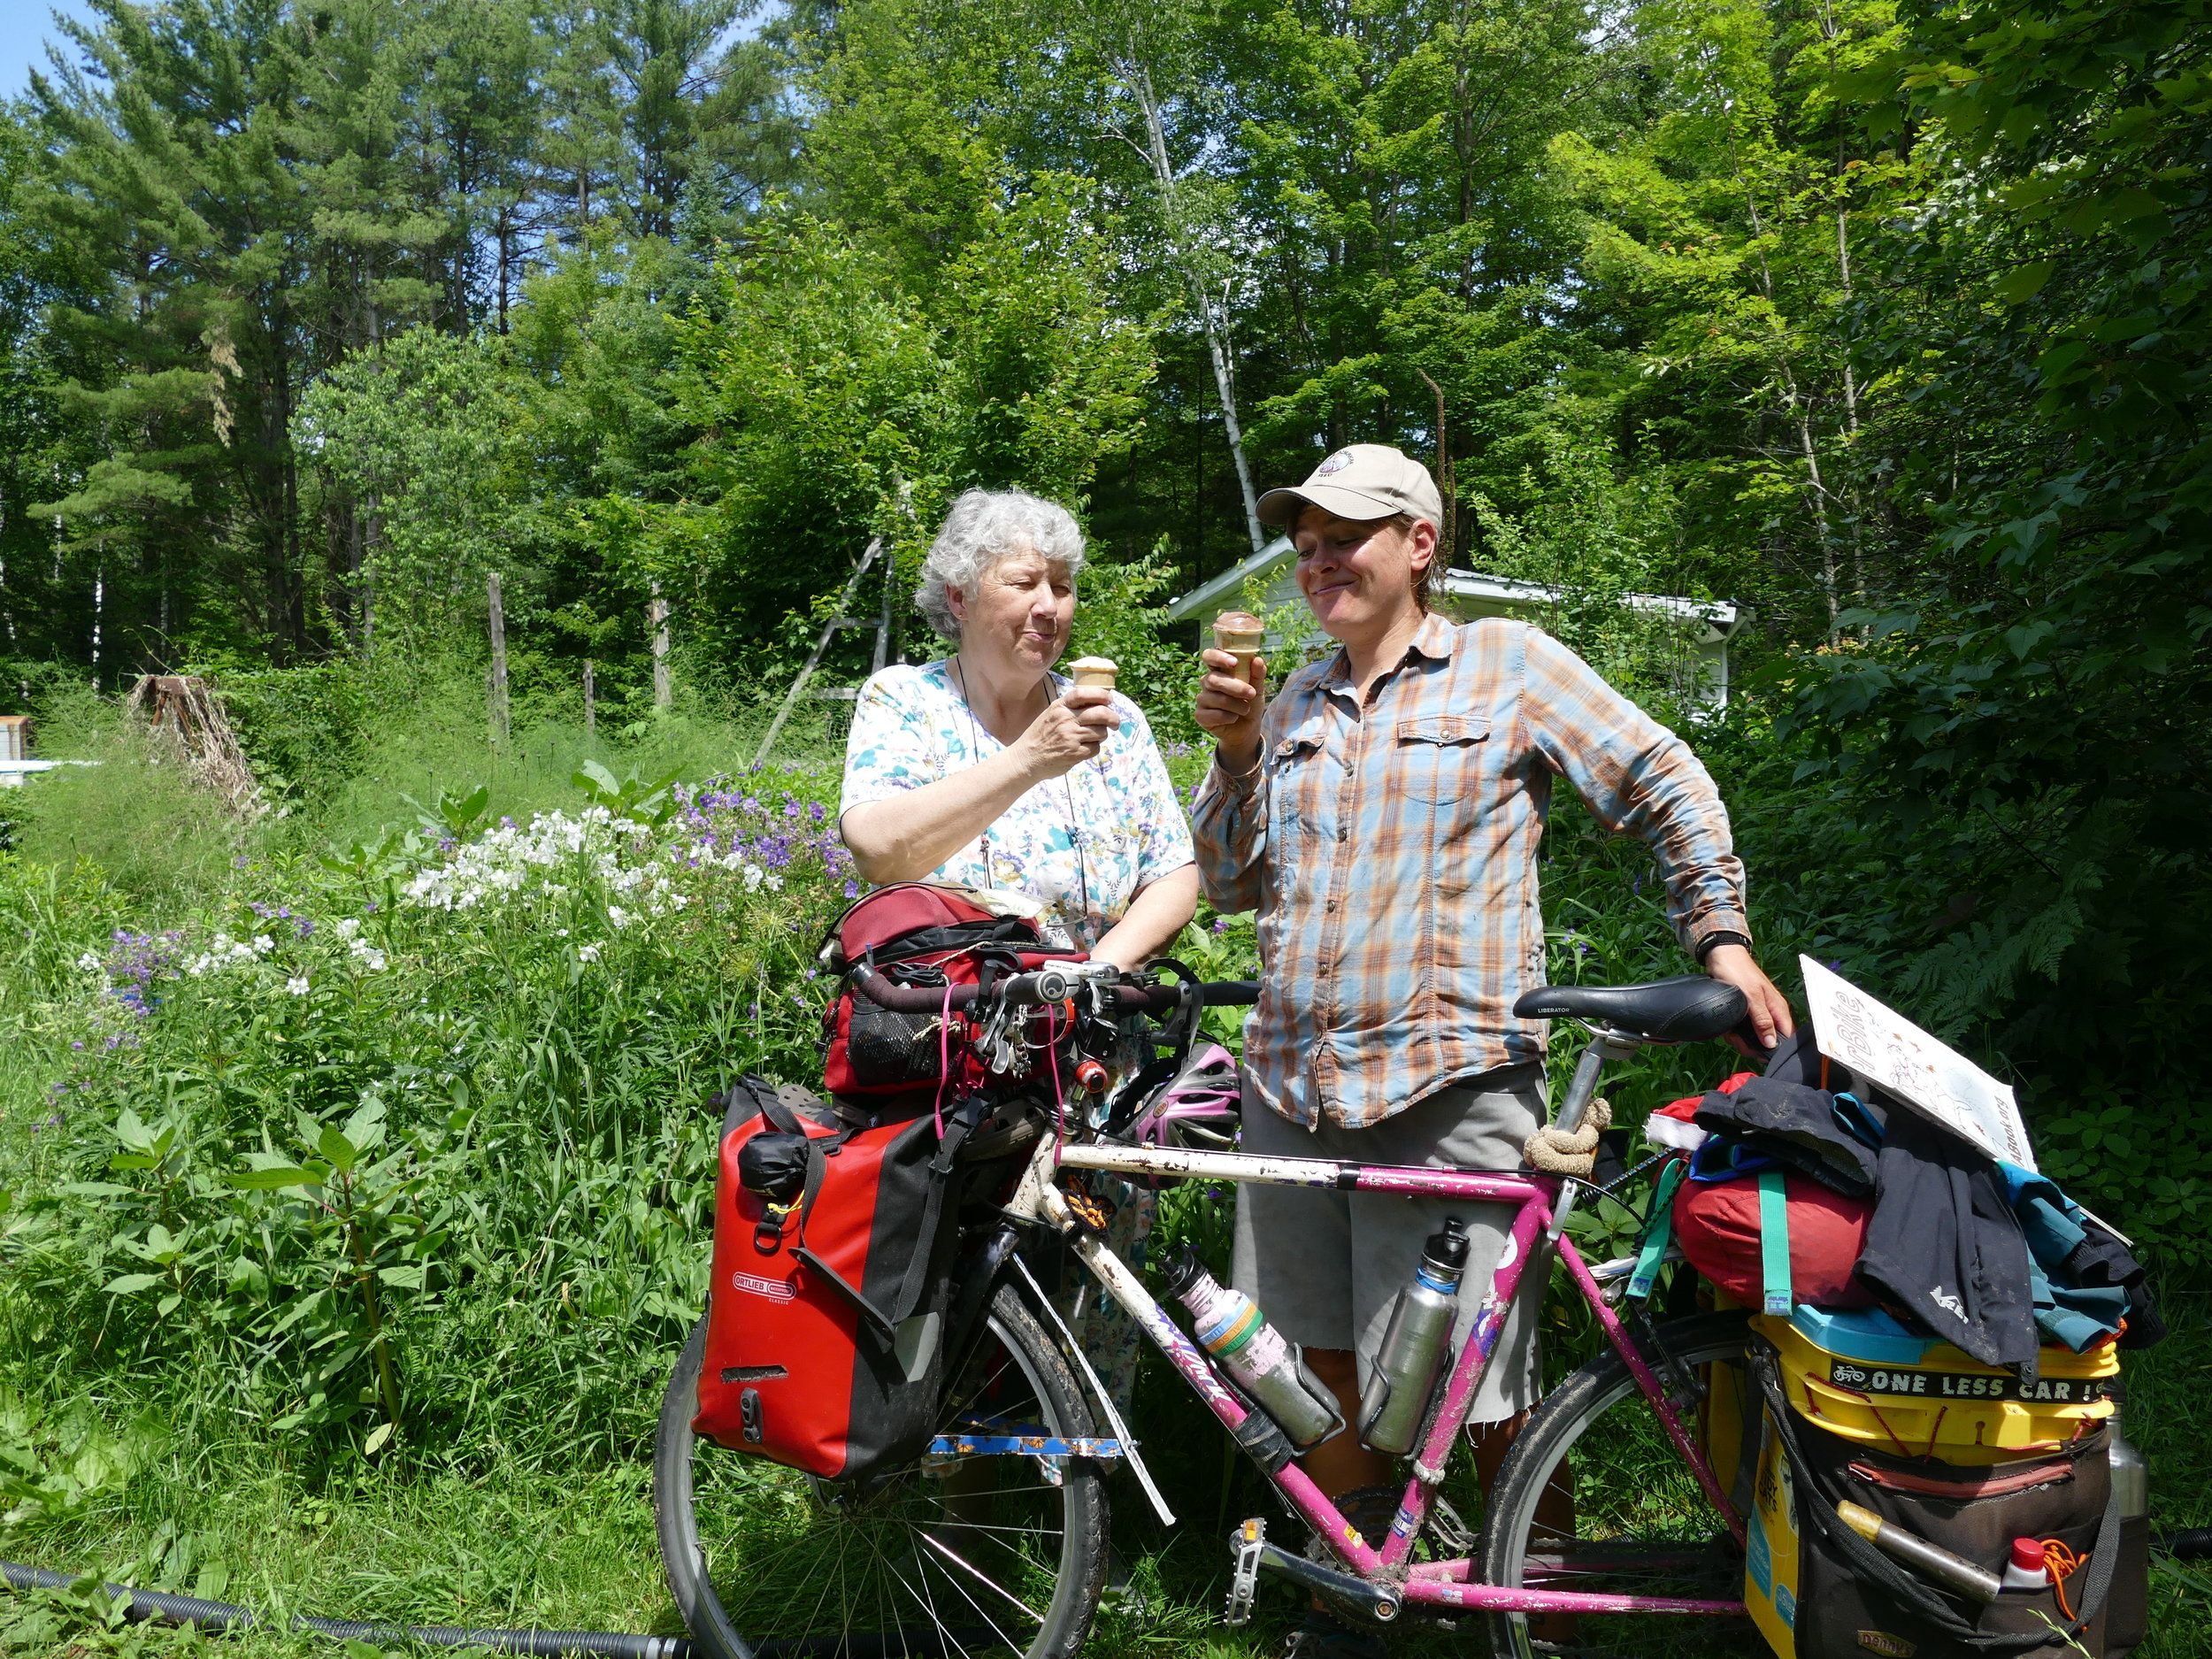 Margaret, a dairy farmer, provided food for me AND for monarchs. Her homemade ice cream was beyond perfect.